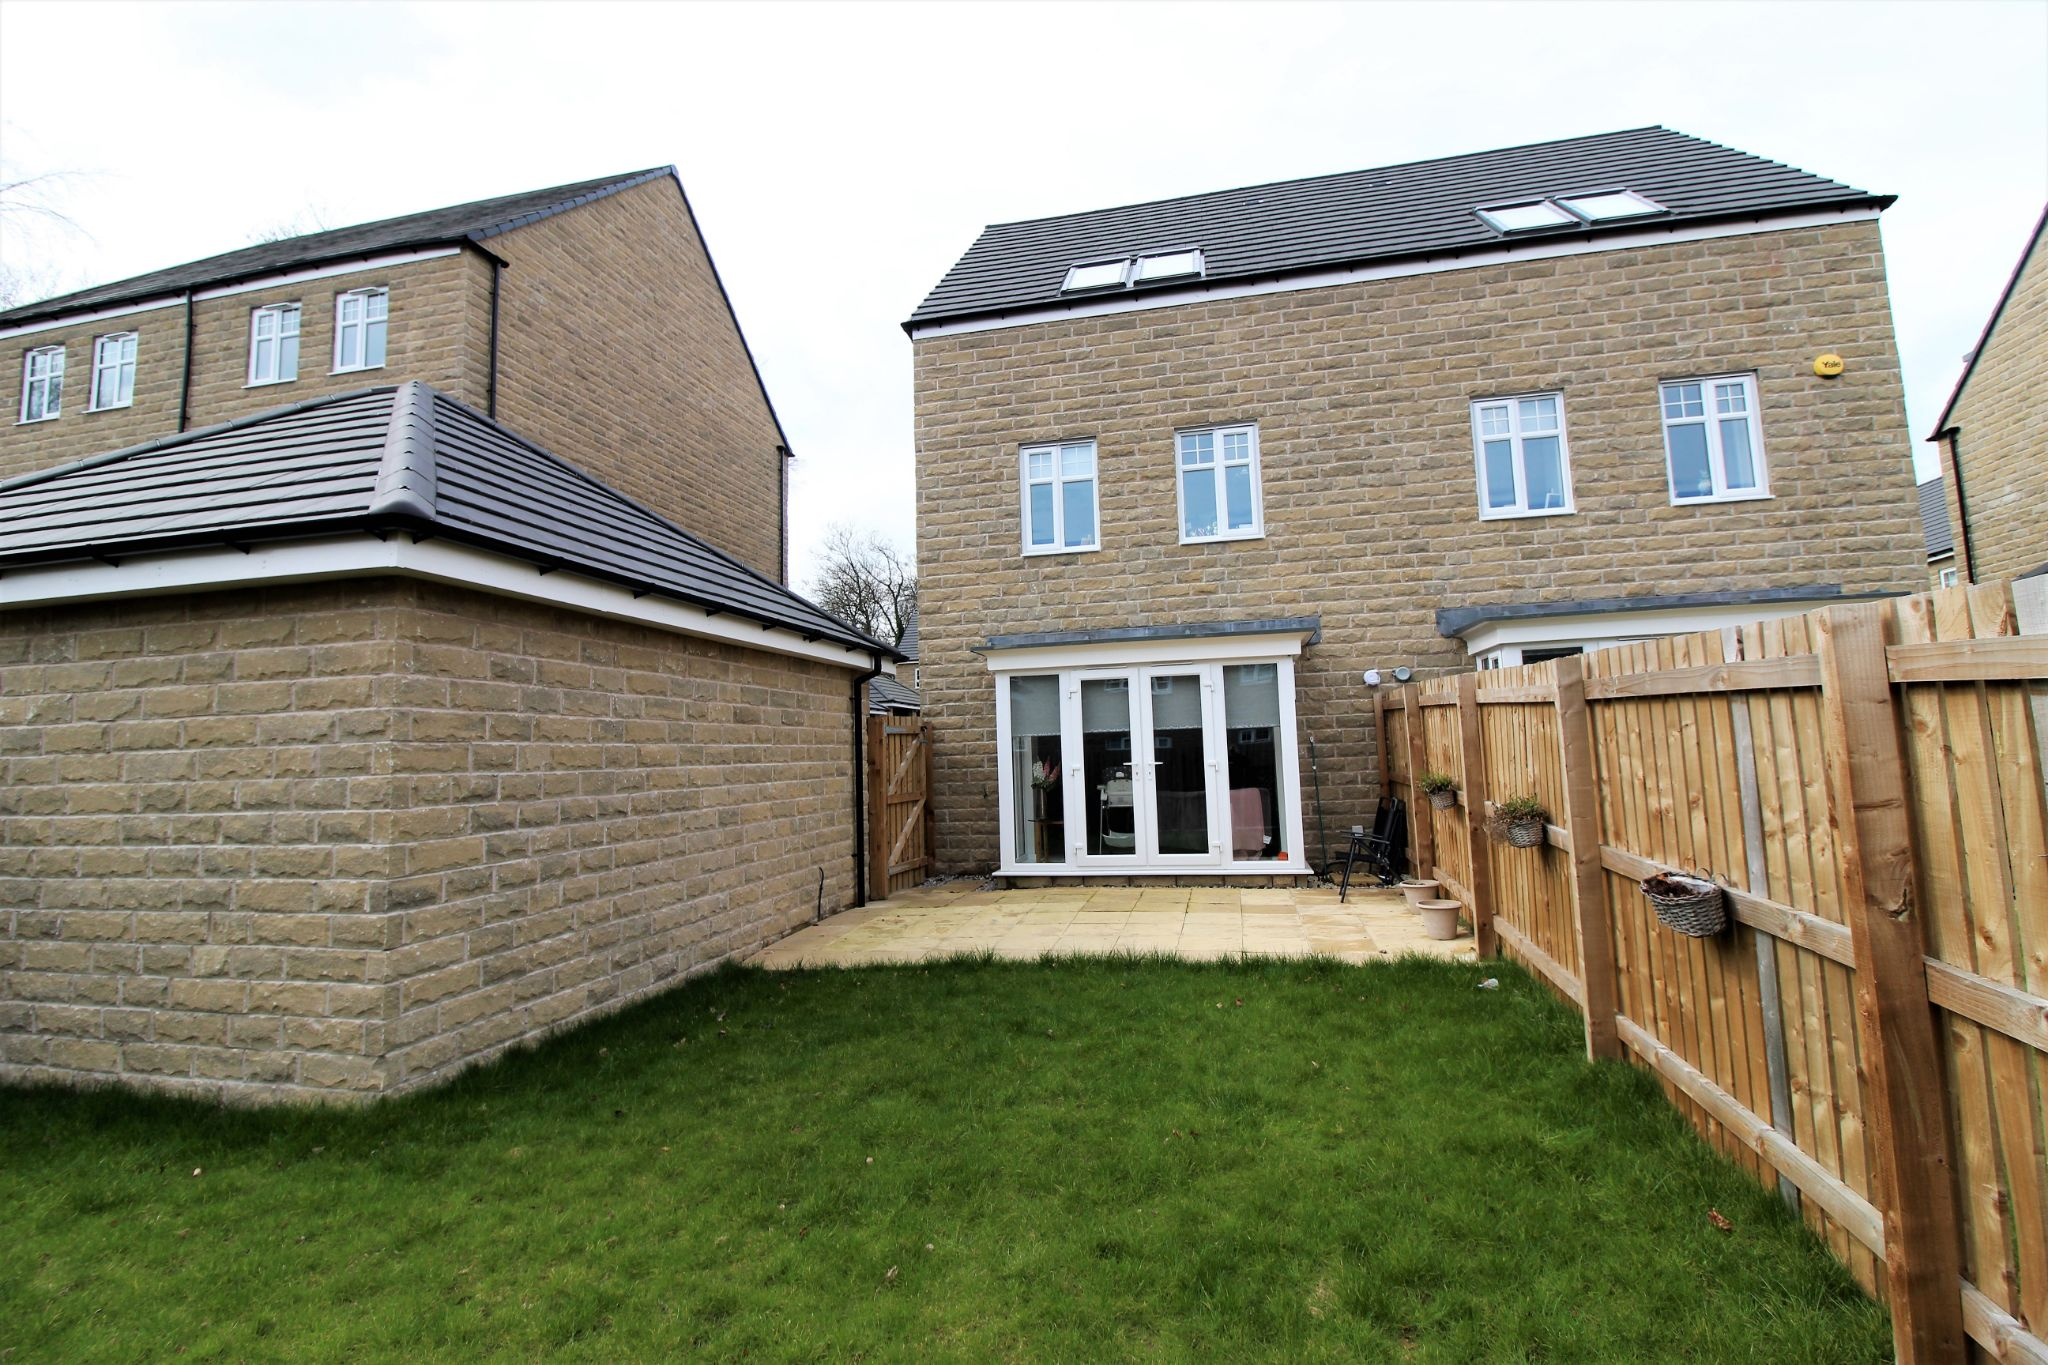 4 bedroom semi-detached house For Sale in Halifax - Rear aspect